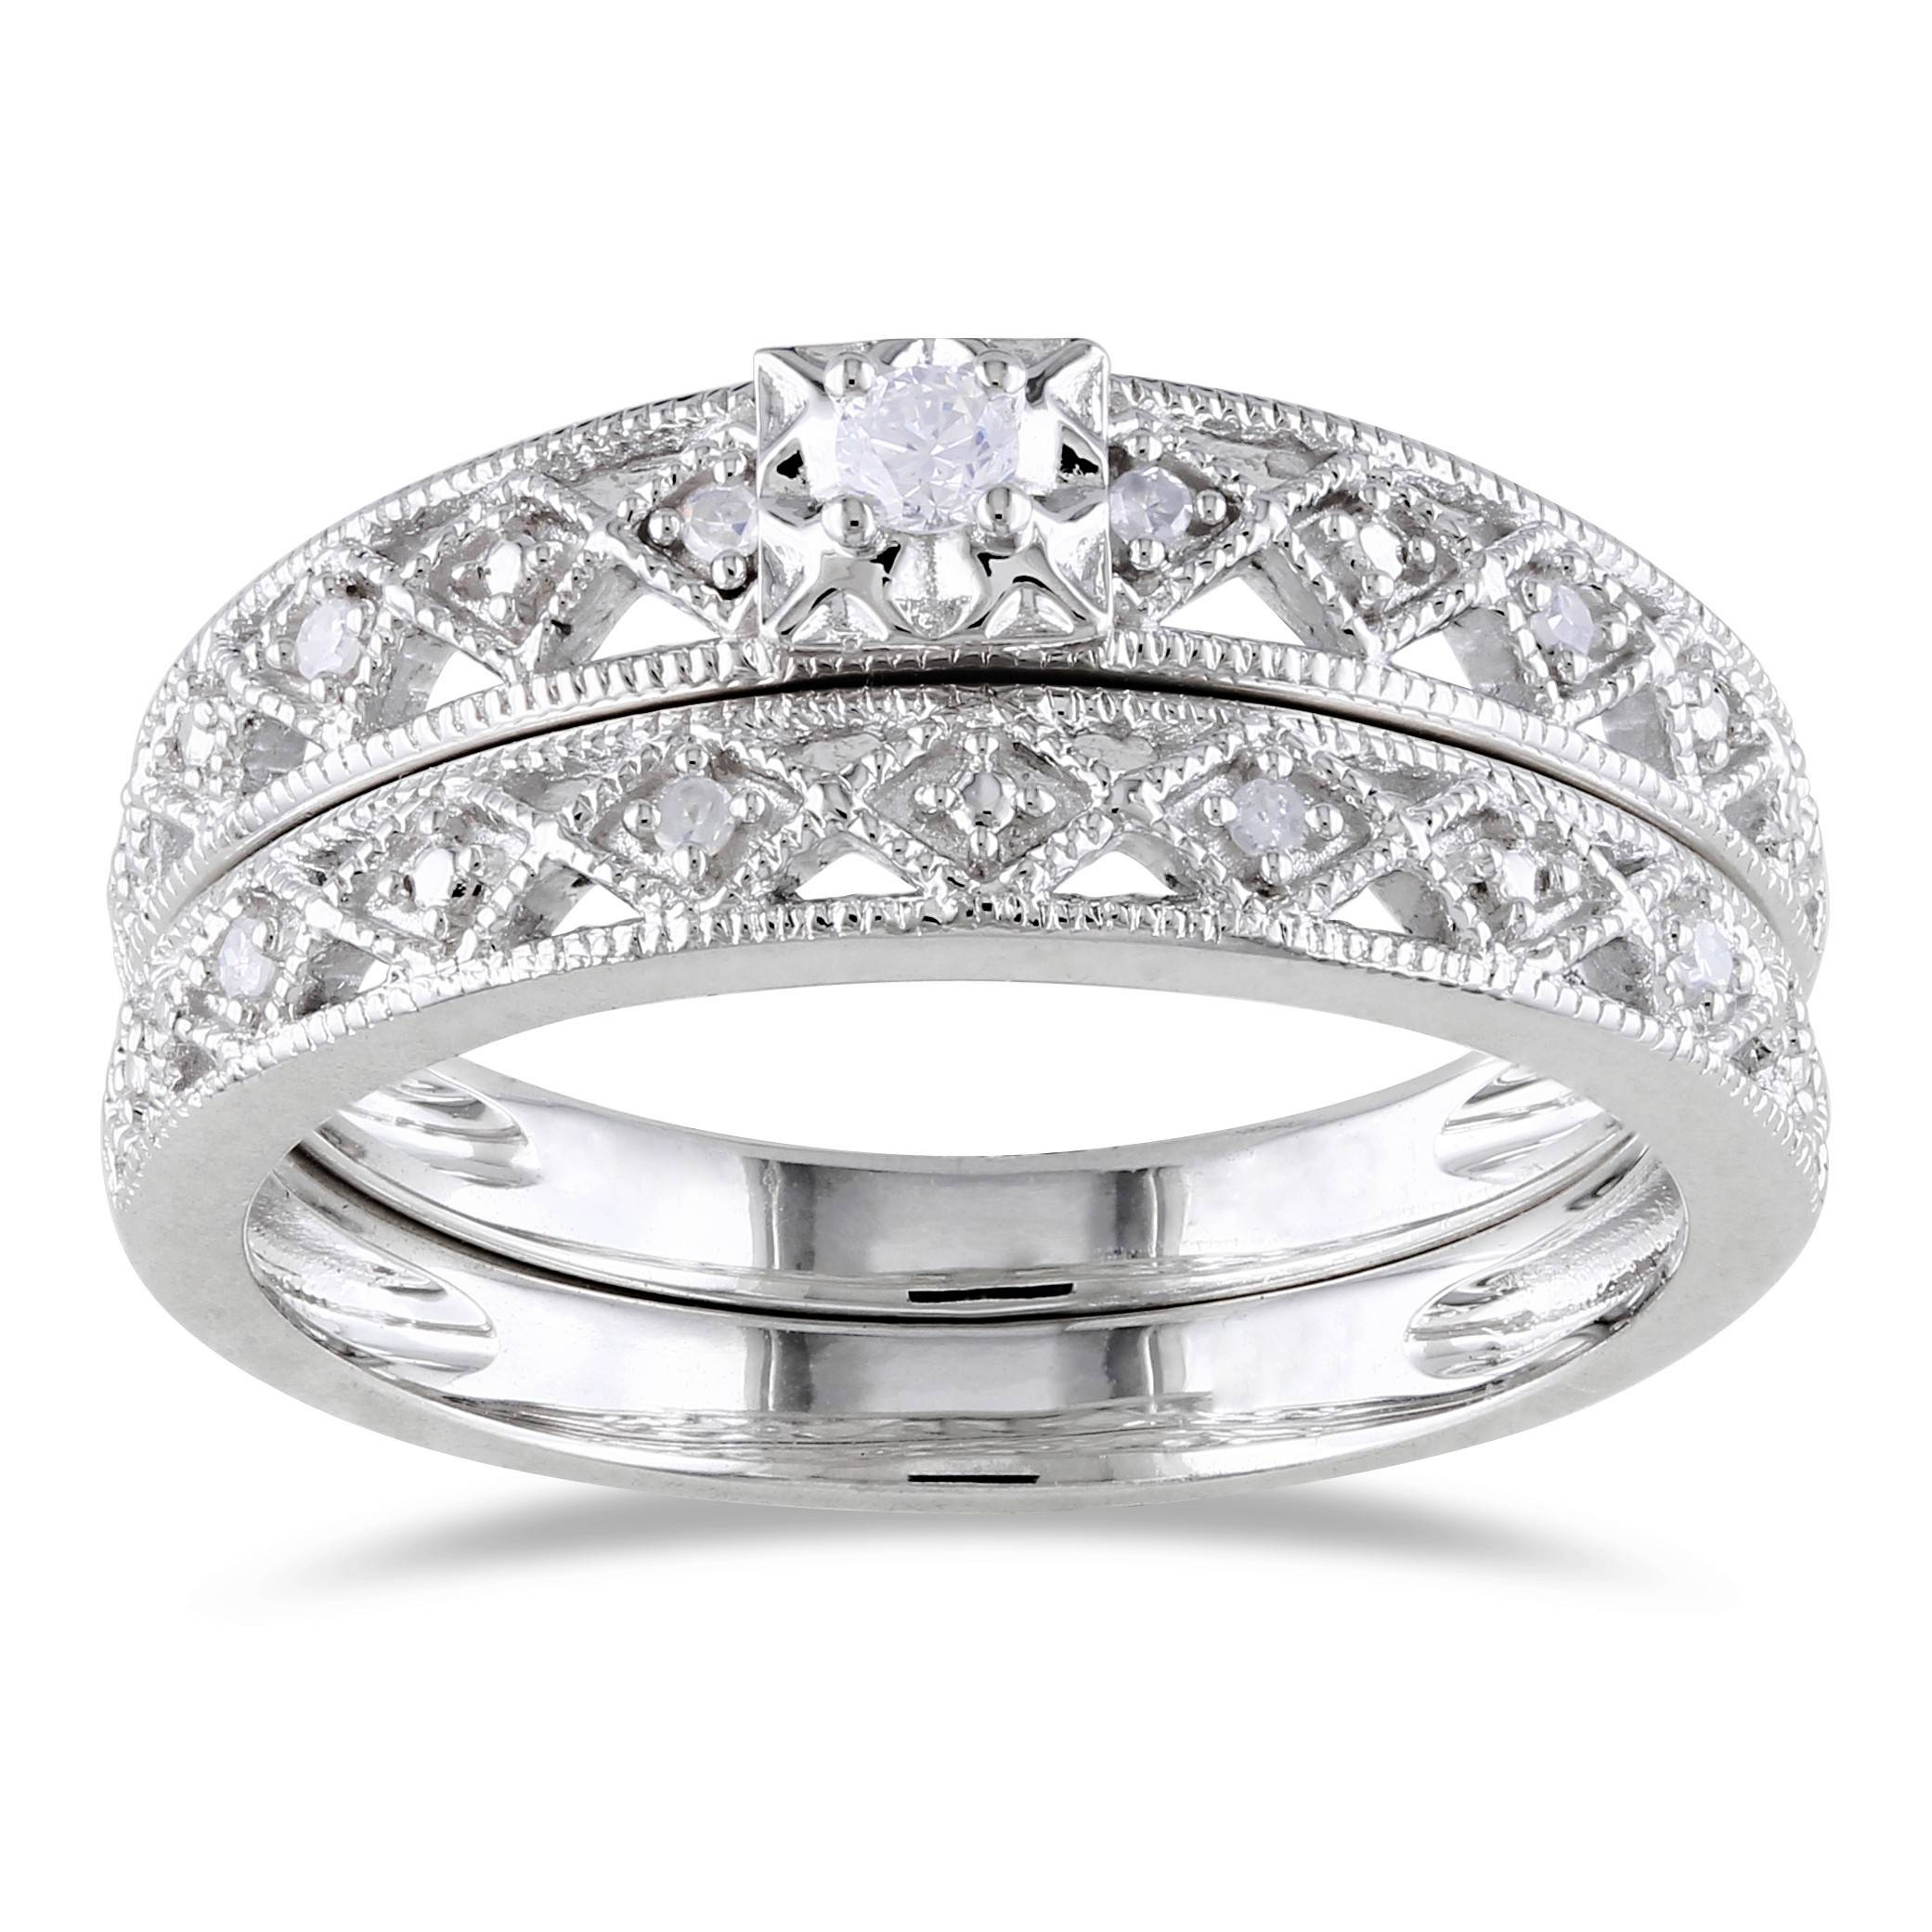 palladium products profile matching textured brush jewellery rounded white gold traditional low wedding rings rose bands